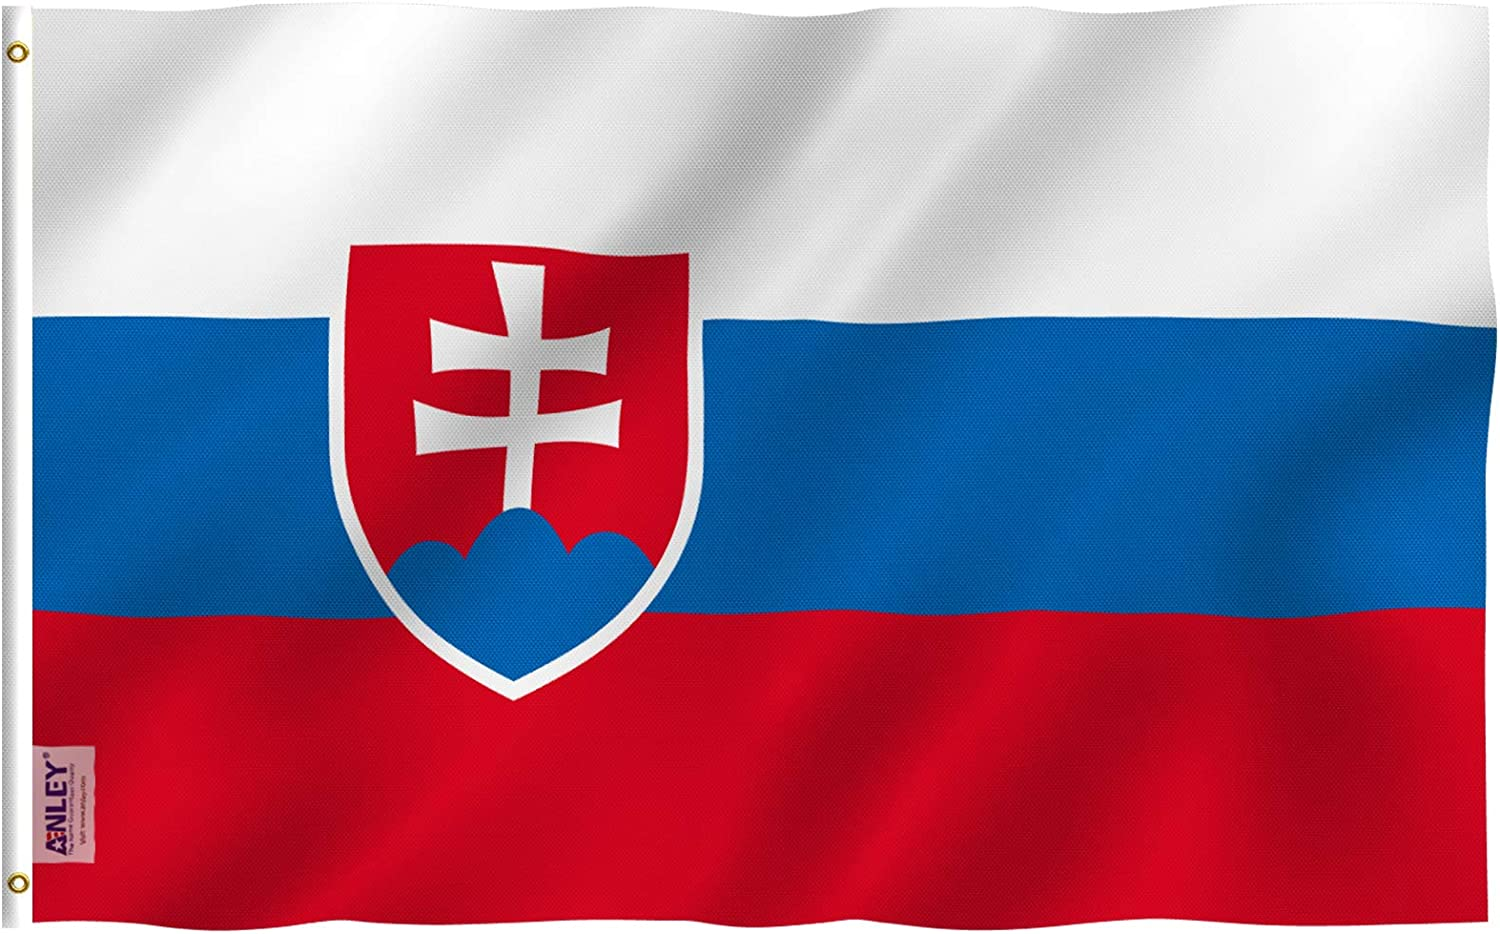 Anley Fly Breeze 3x5 Feet Slovakia Flag - Vivid Color and Fade Proof - Canvas Header and Double Stitched - Slovak Republic Flags Polyester with Brass Grommets 3 X 5 Ft